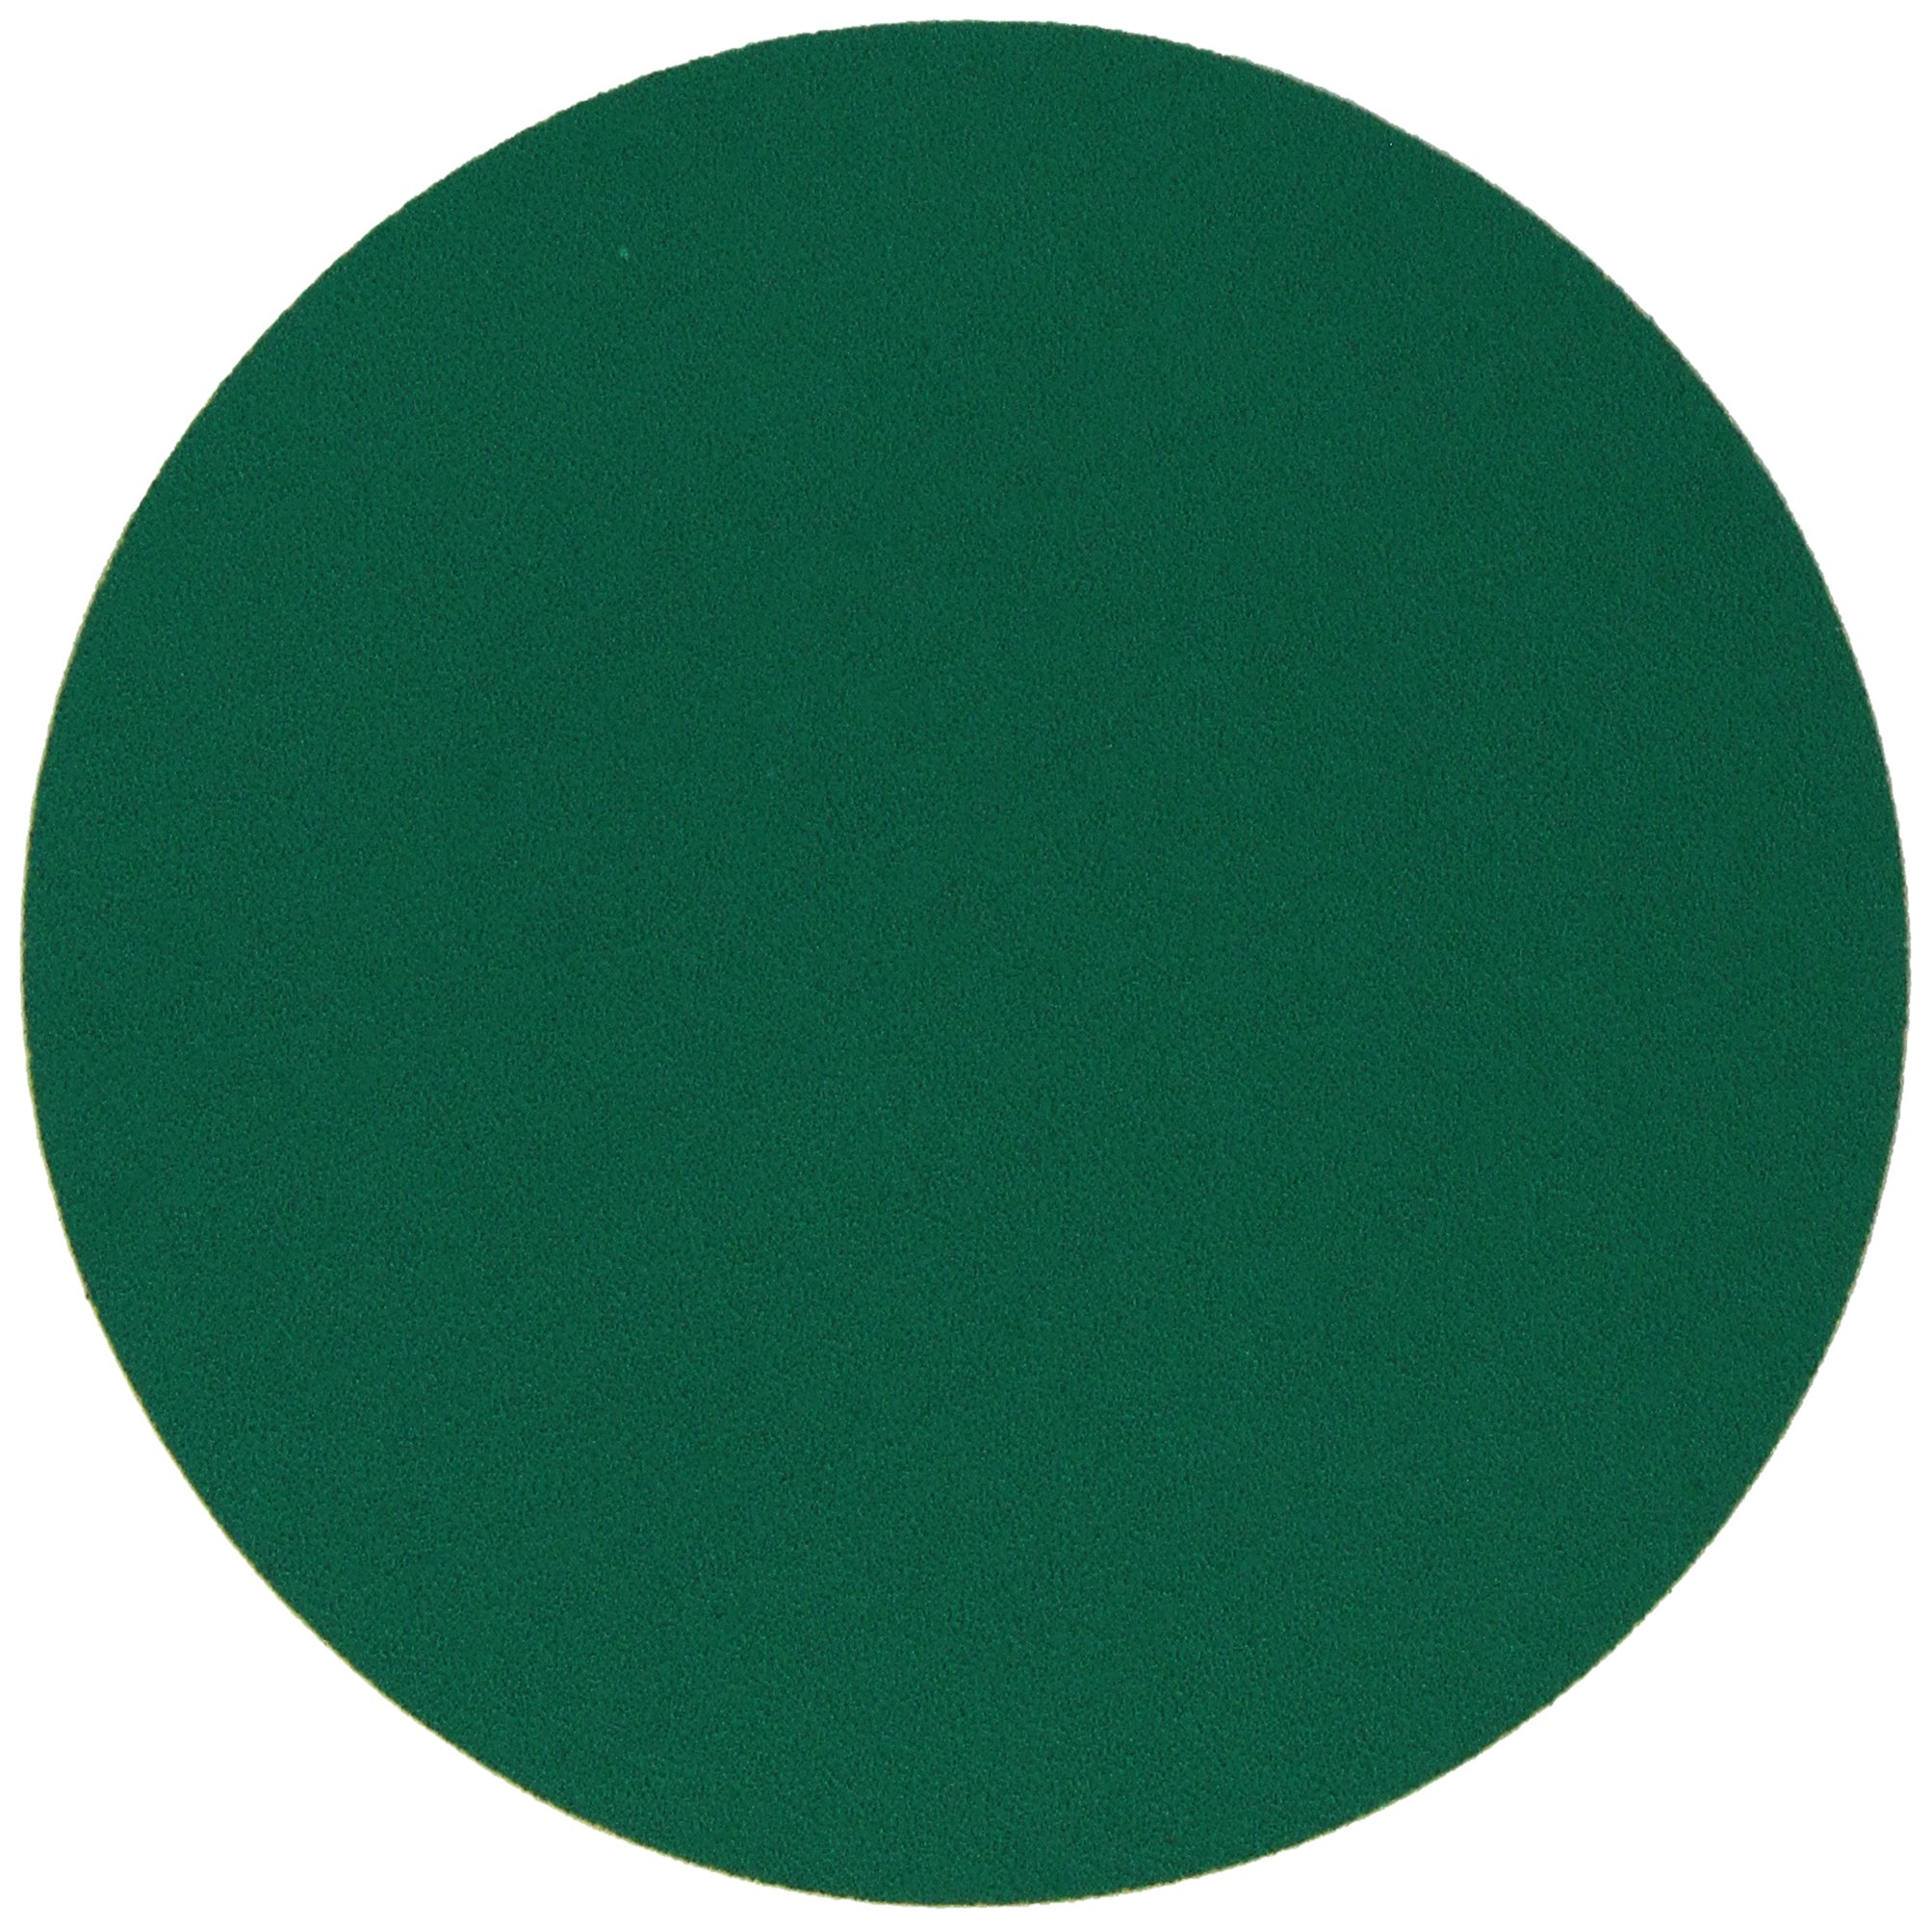 3M 01549 Green Corps Stikit 8'' 80D Grit Production Disc